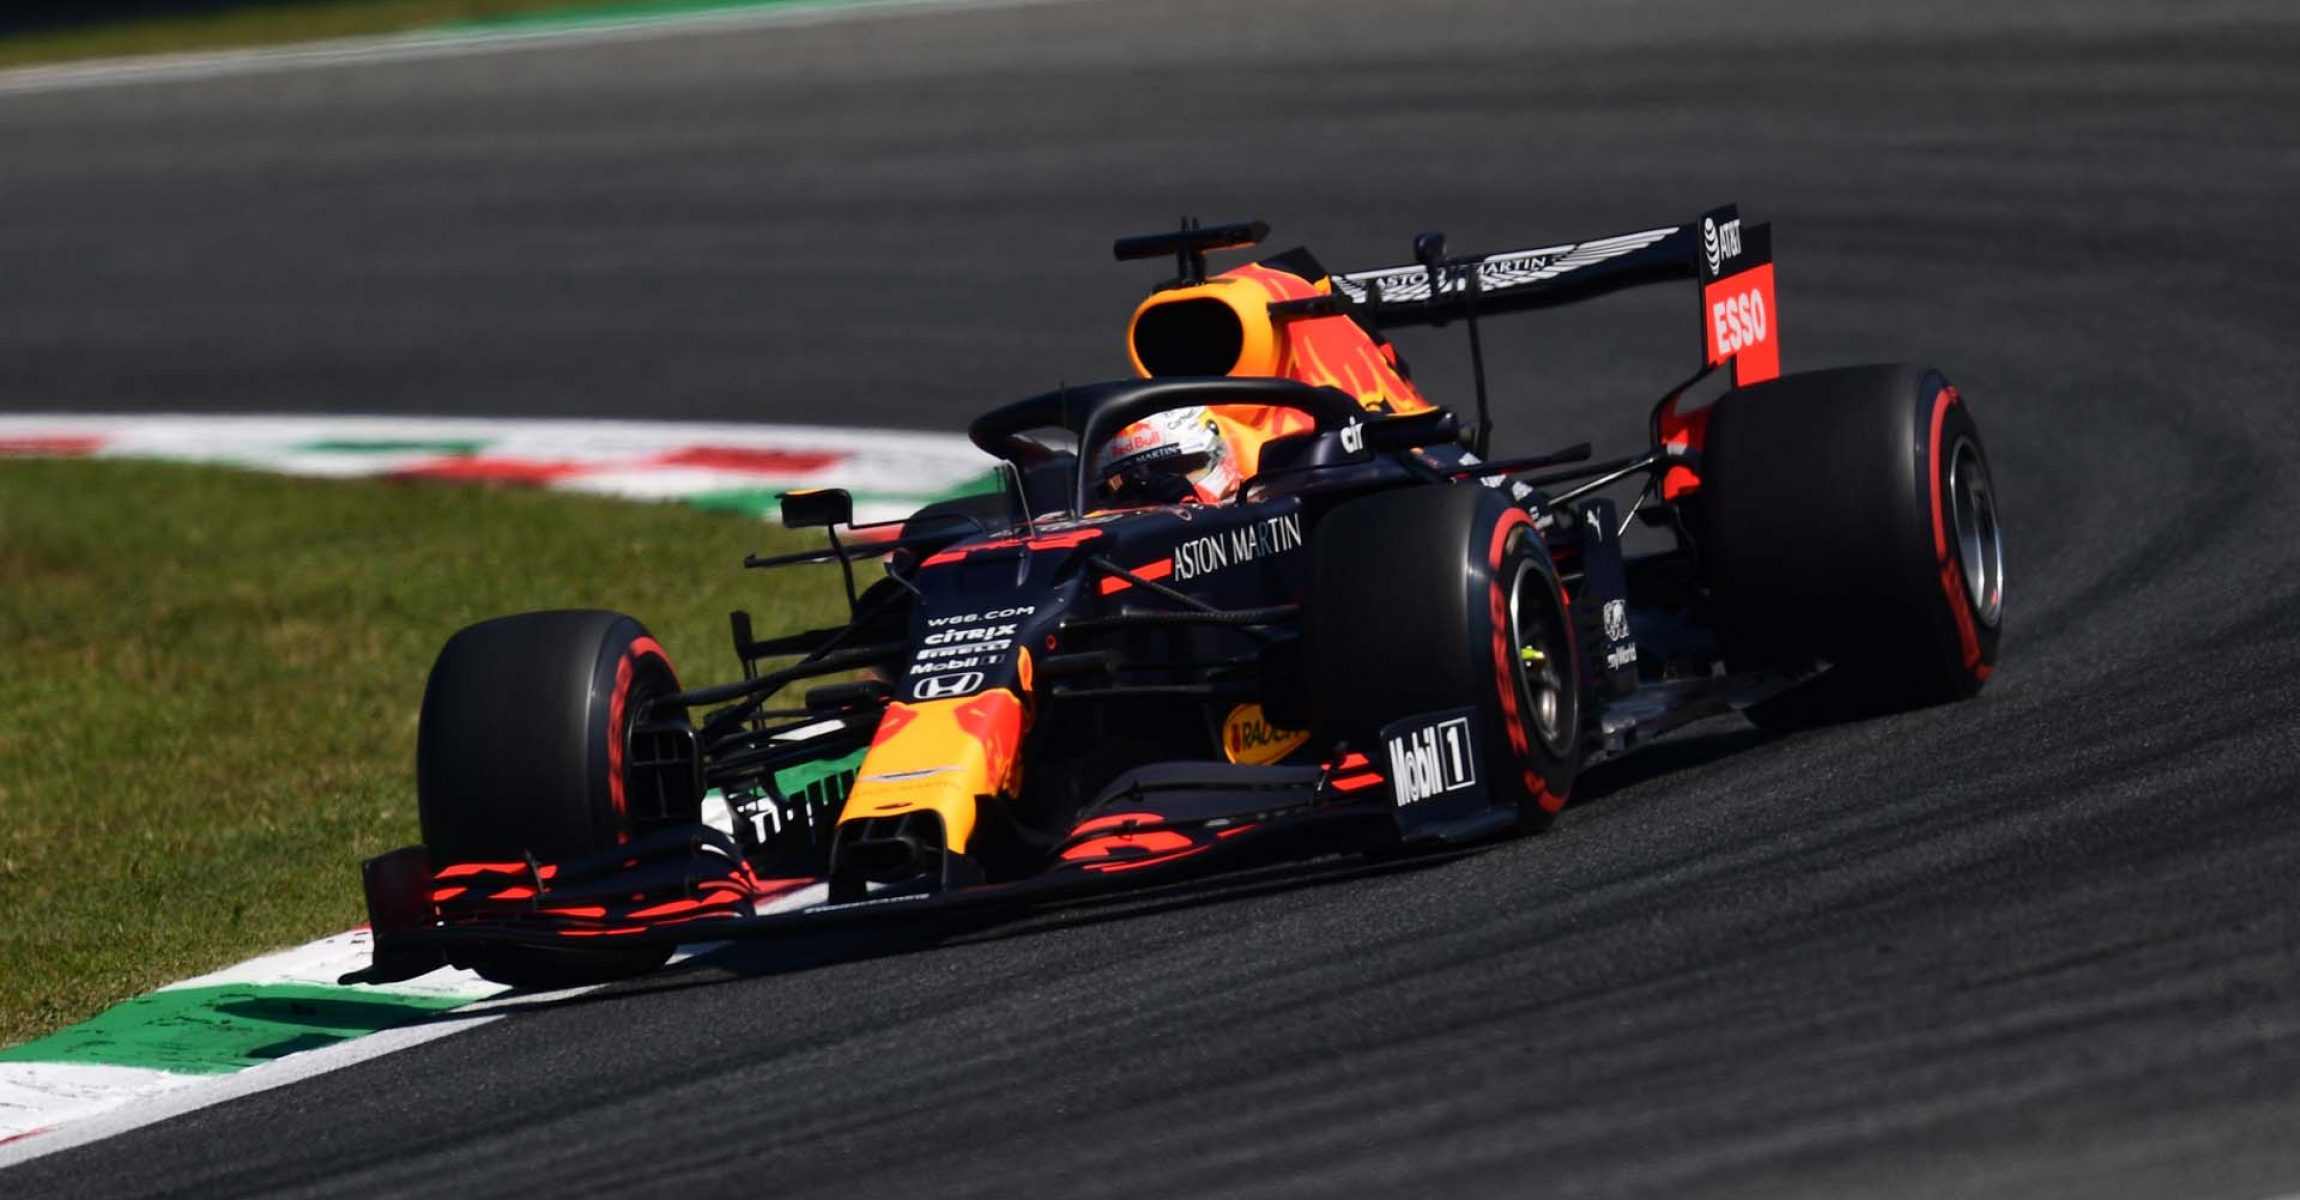 MONZA, ITALY - SEPTEMBER 04: Max Verstappen of the Netherlands driving the (33) Aston Martin Red Bull Racing RB16 on track during practice for the F1 Grand Prix of Italy at Autodromo di Monza on September 04, 2020 in Monza, Italy. (Photo by Miguel Medina/Pool via Getty Images)